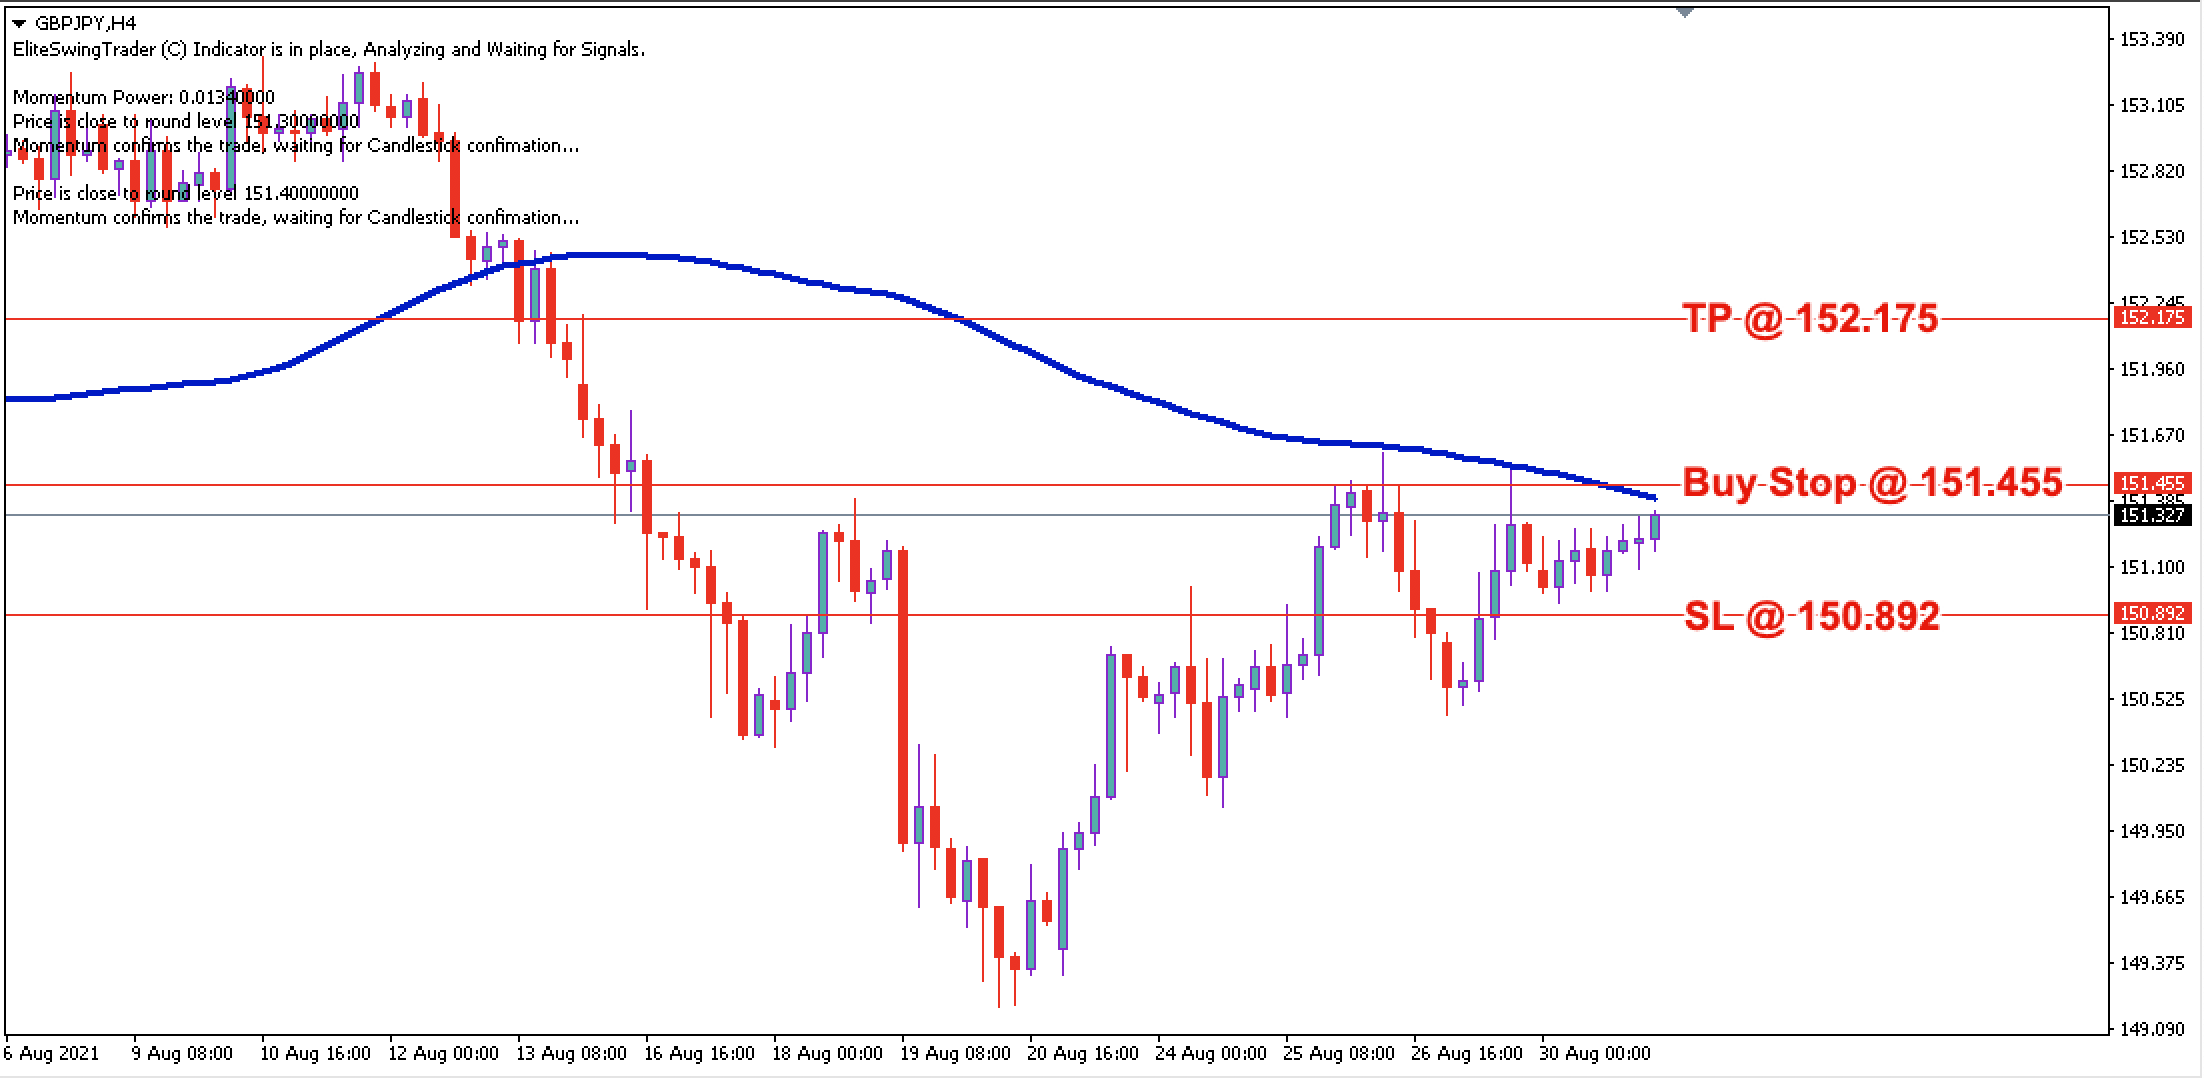 GBP/JPY Daily Price Forecast – 31st August 2021